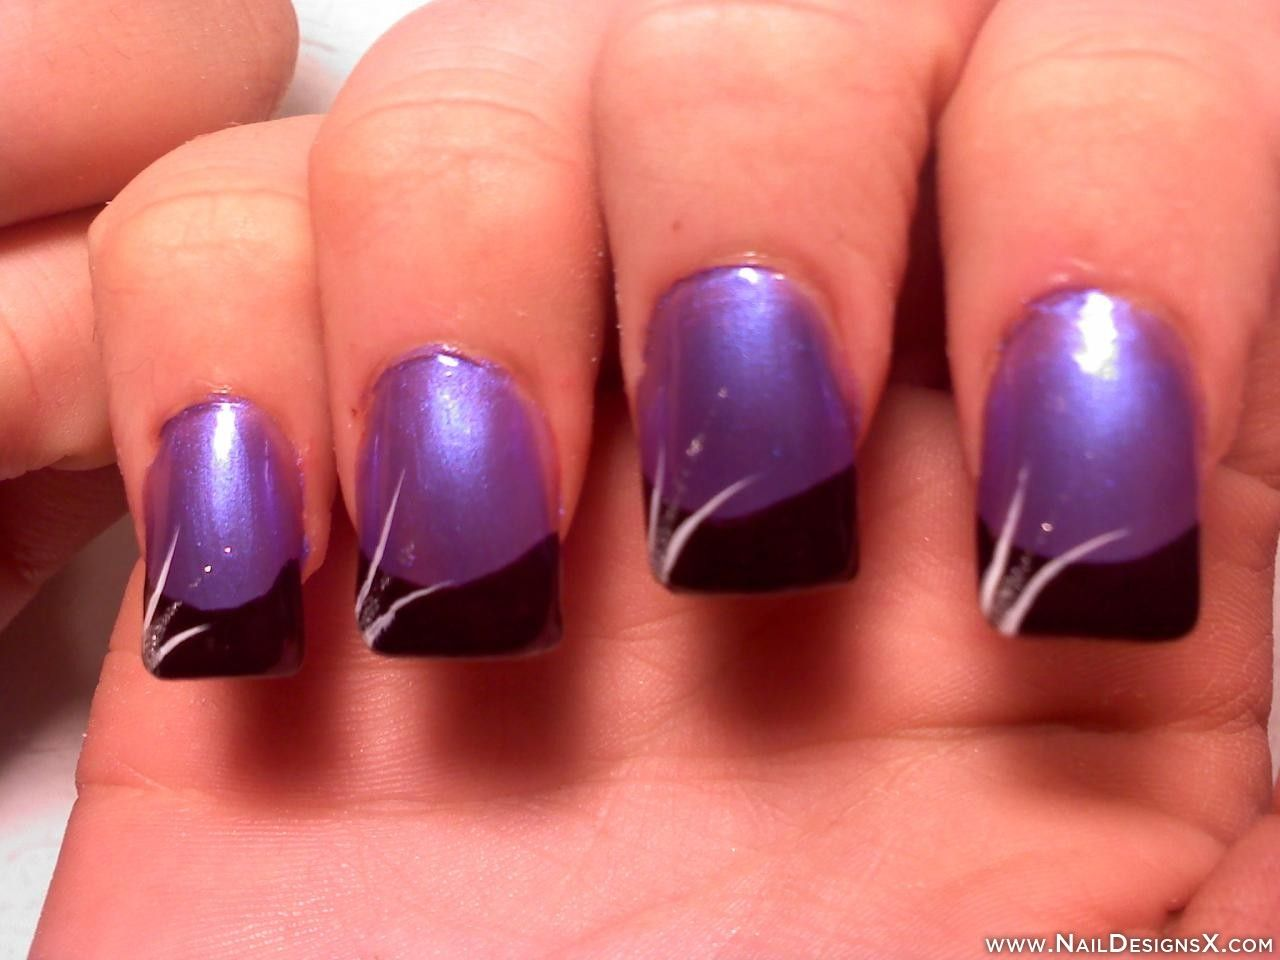 purple 4 nail design | Acrylic Nail Designs & Nail Art ...